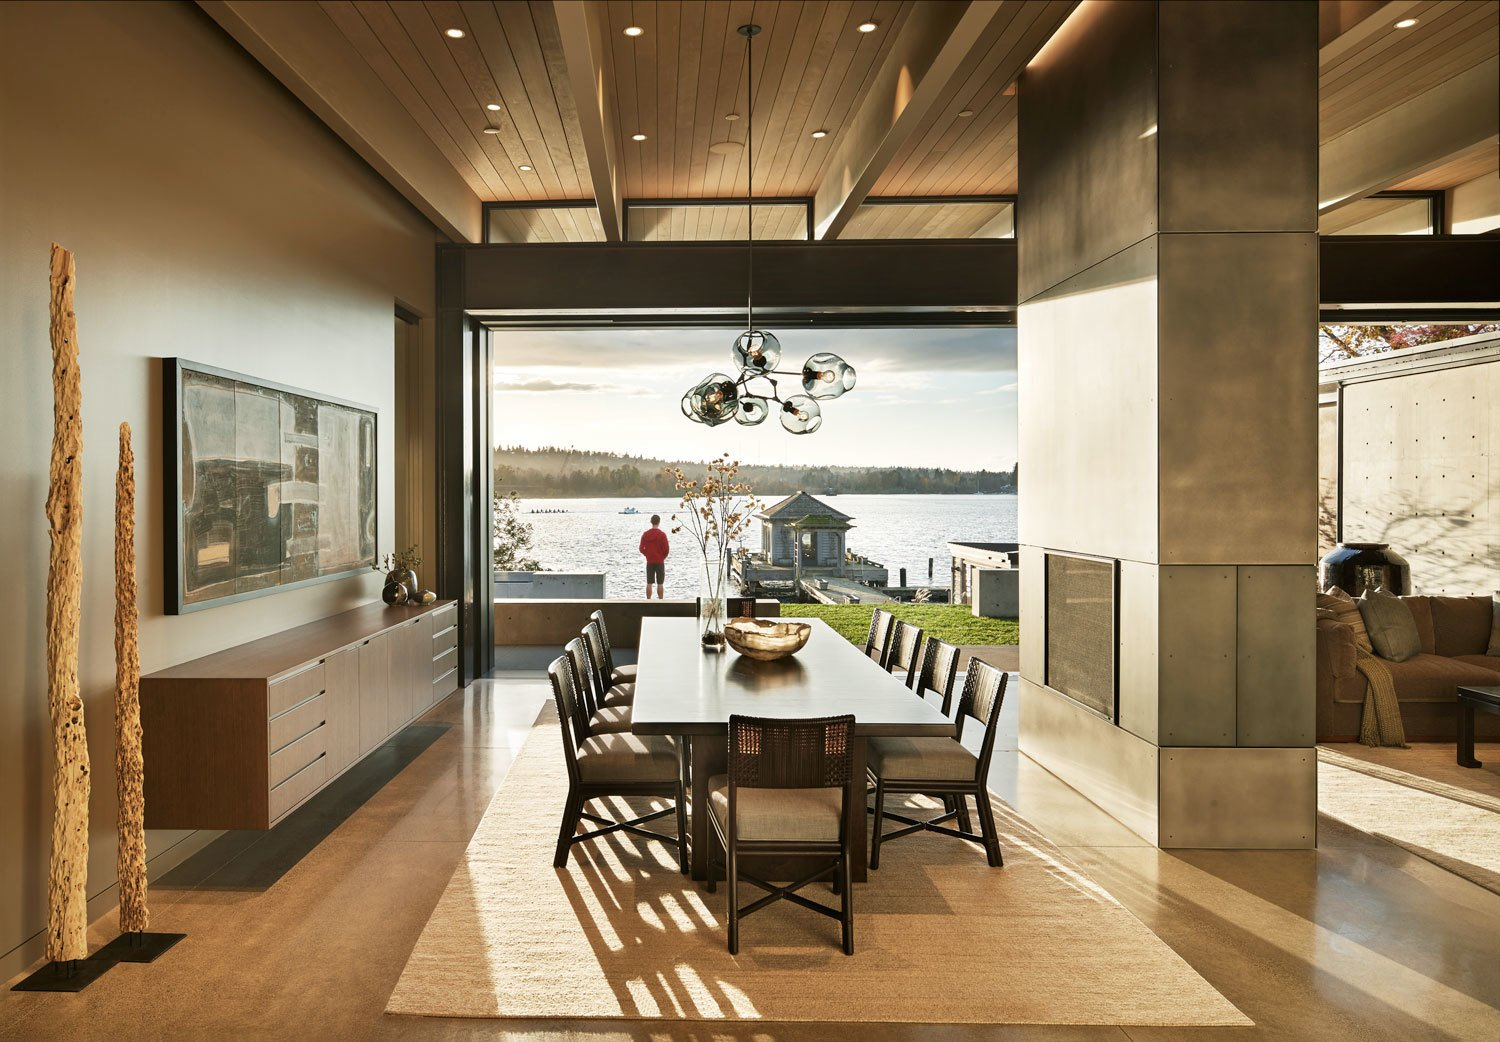 Dining Room, Two-Sided Fireplace, Pendant Lighting, Table, Concrete Floor, Storage, Chair, and Ceiling Lighting Sweeping views of Lake Washington from the dining room  Union Bay Residence by NB Design Group